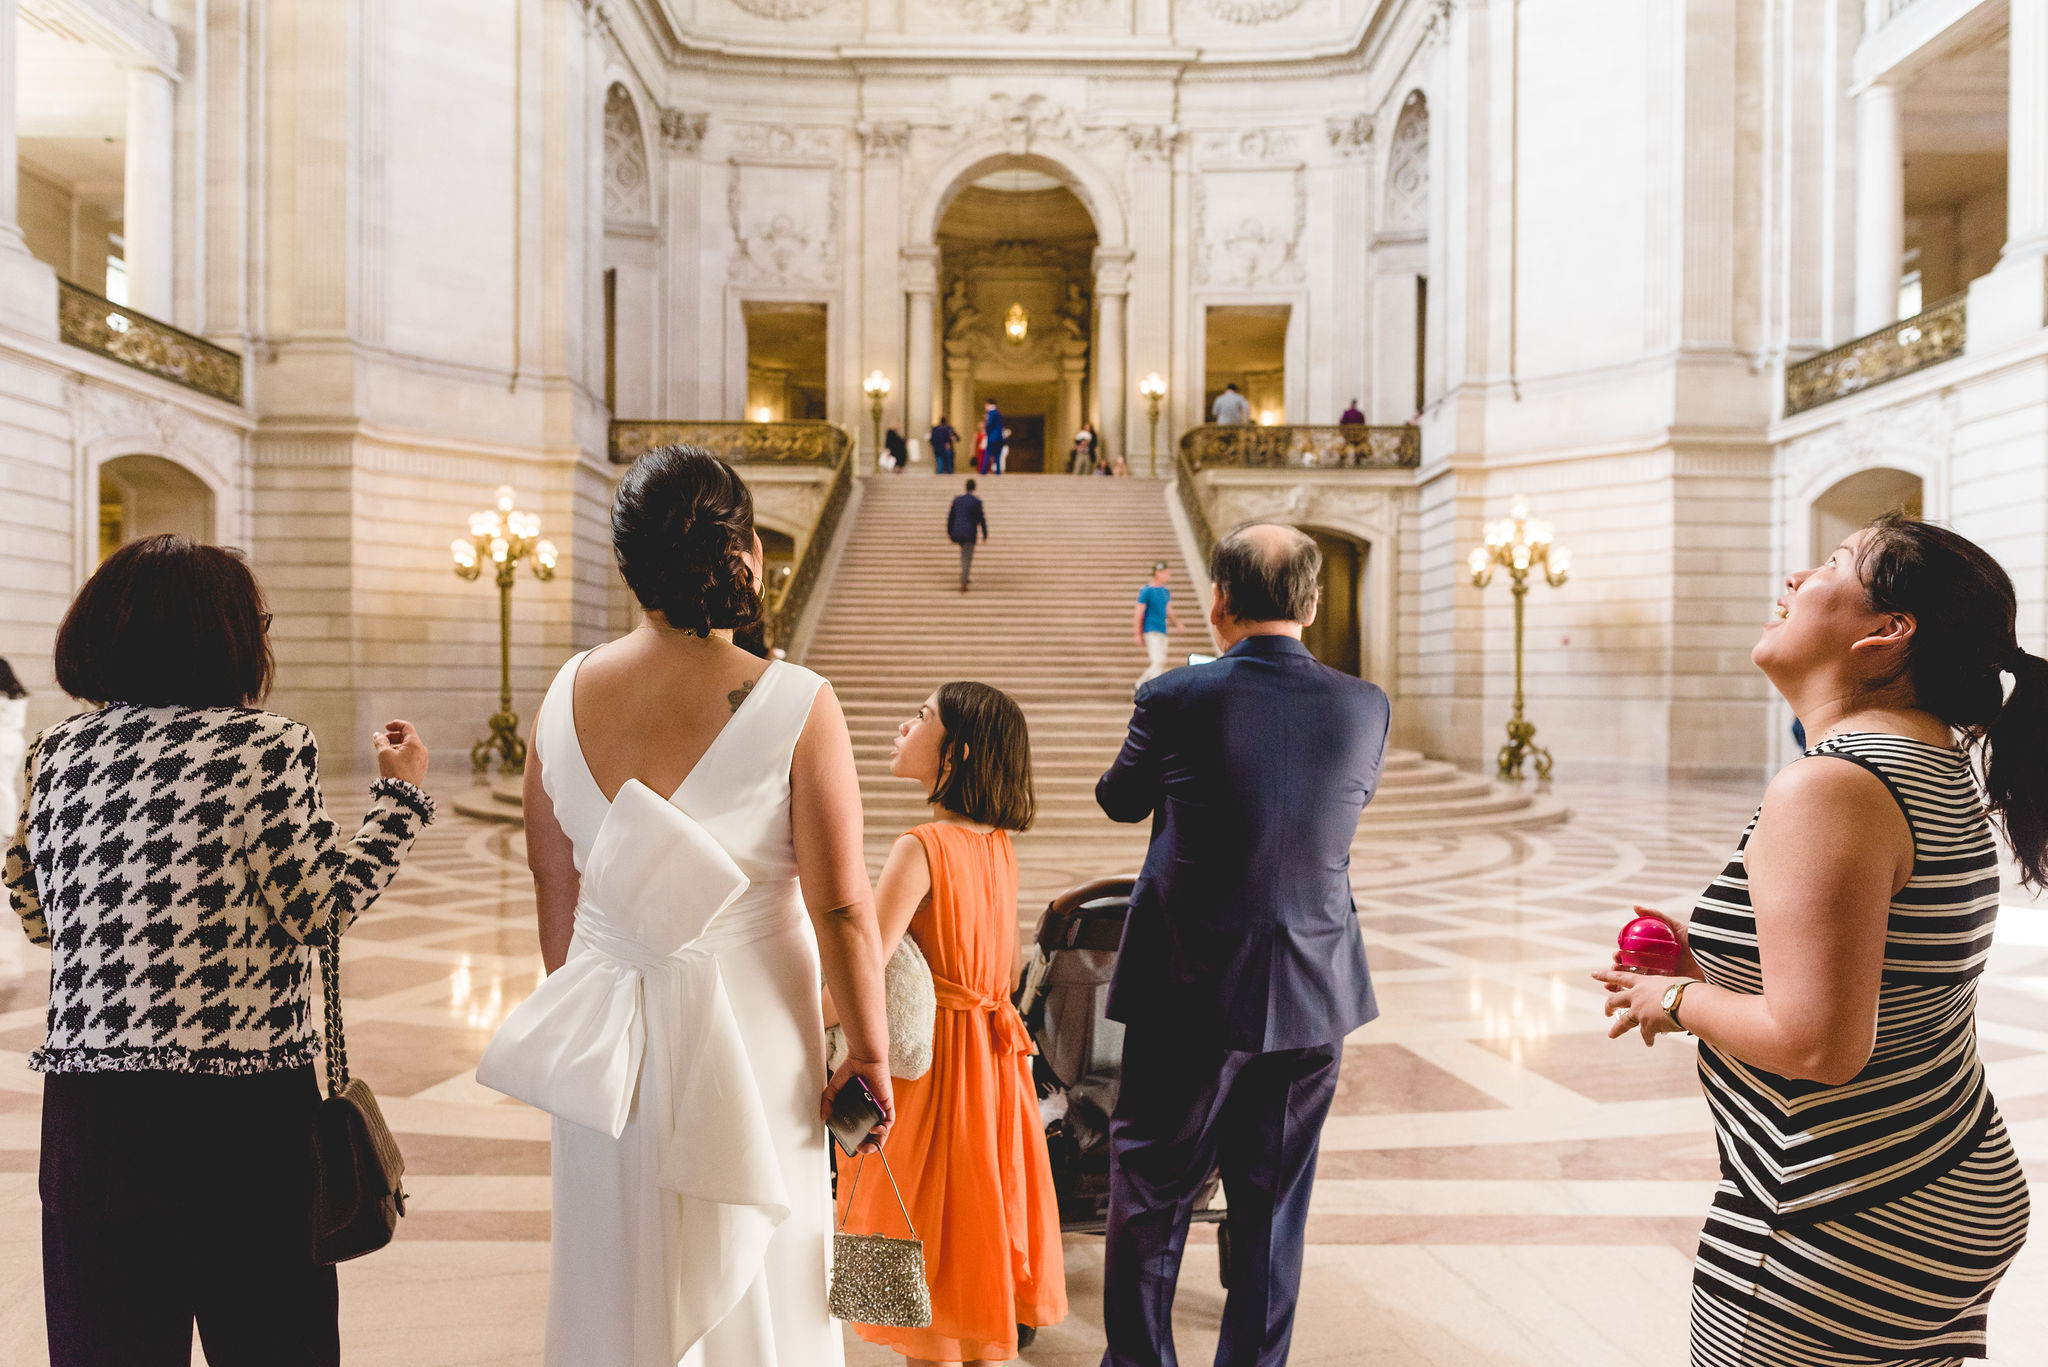 wtfjk_wedding-cityhall-11.jpg